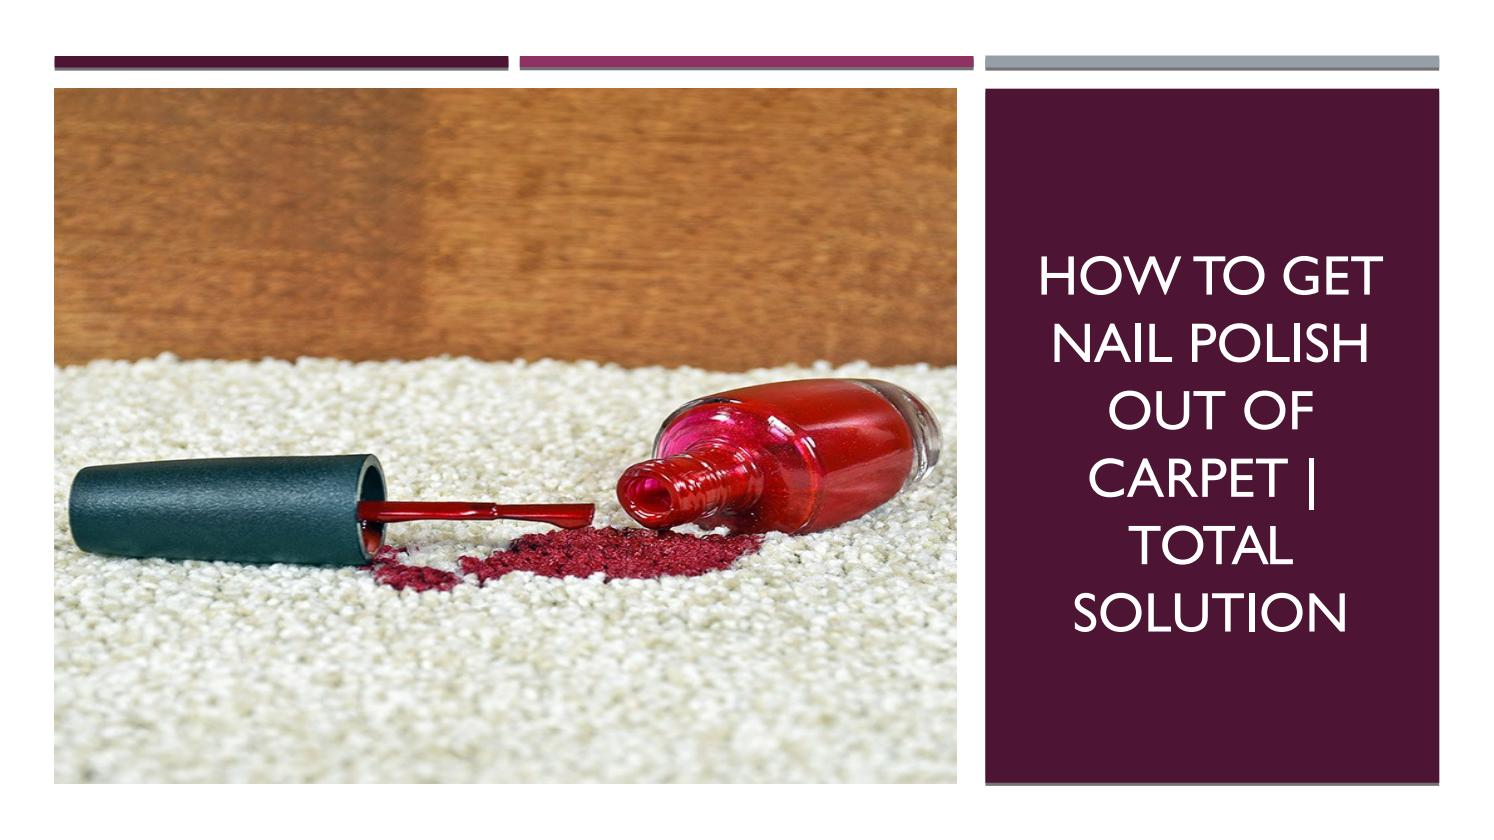 How to get nail polish out of carpet easily by insidercleaning   issuu